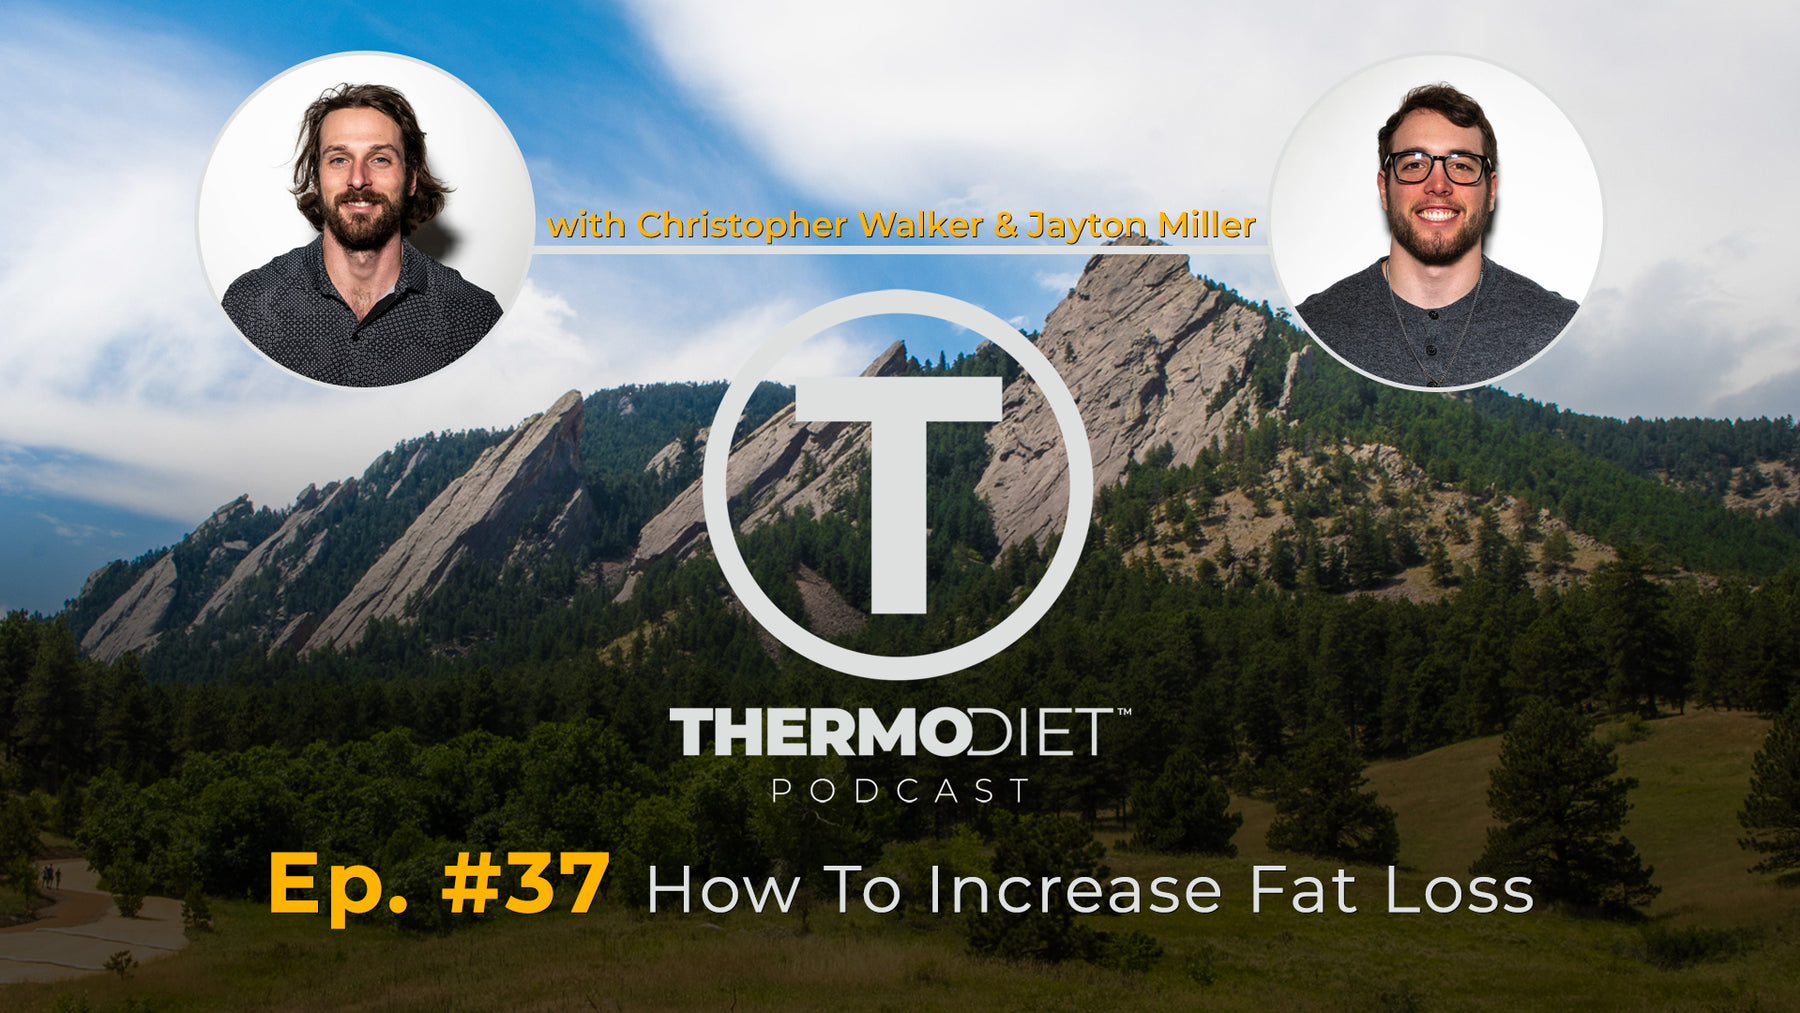 Thermo Diet Podcast Episode 37 - Tips For Fat Loss